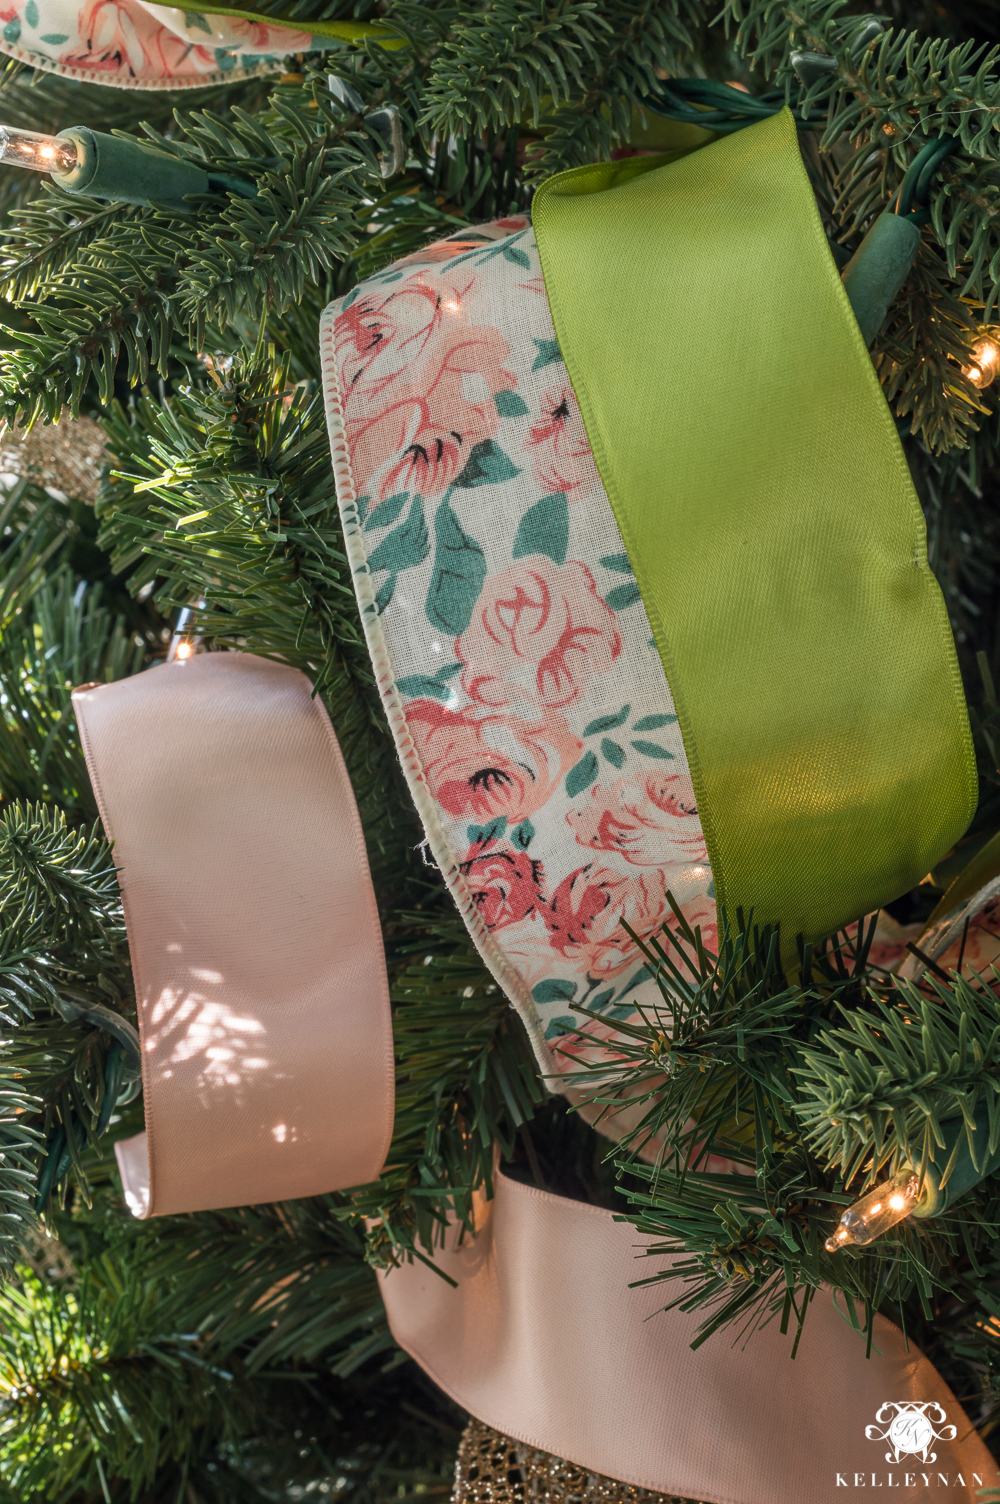 How to Decorate a Christmas Tree with Ribbon - Kelley Nan